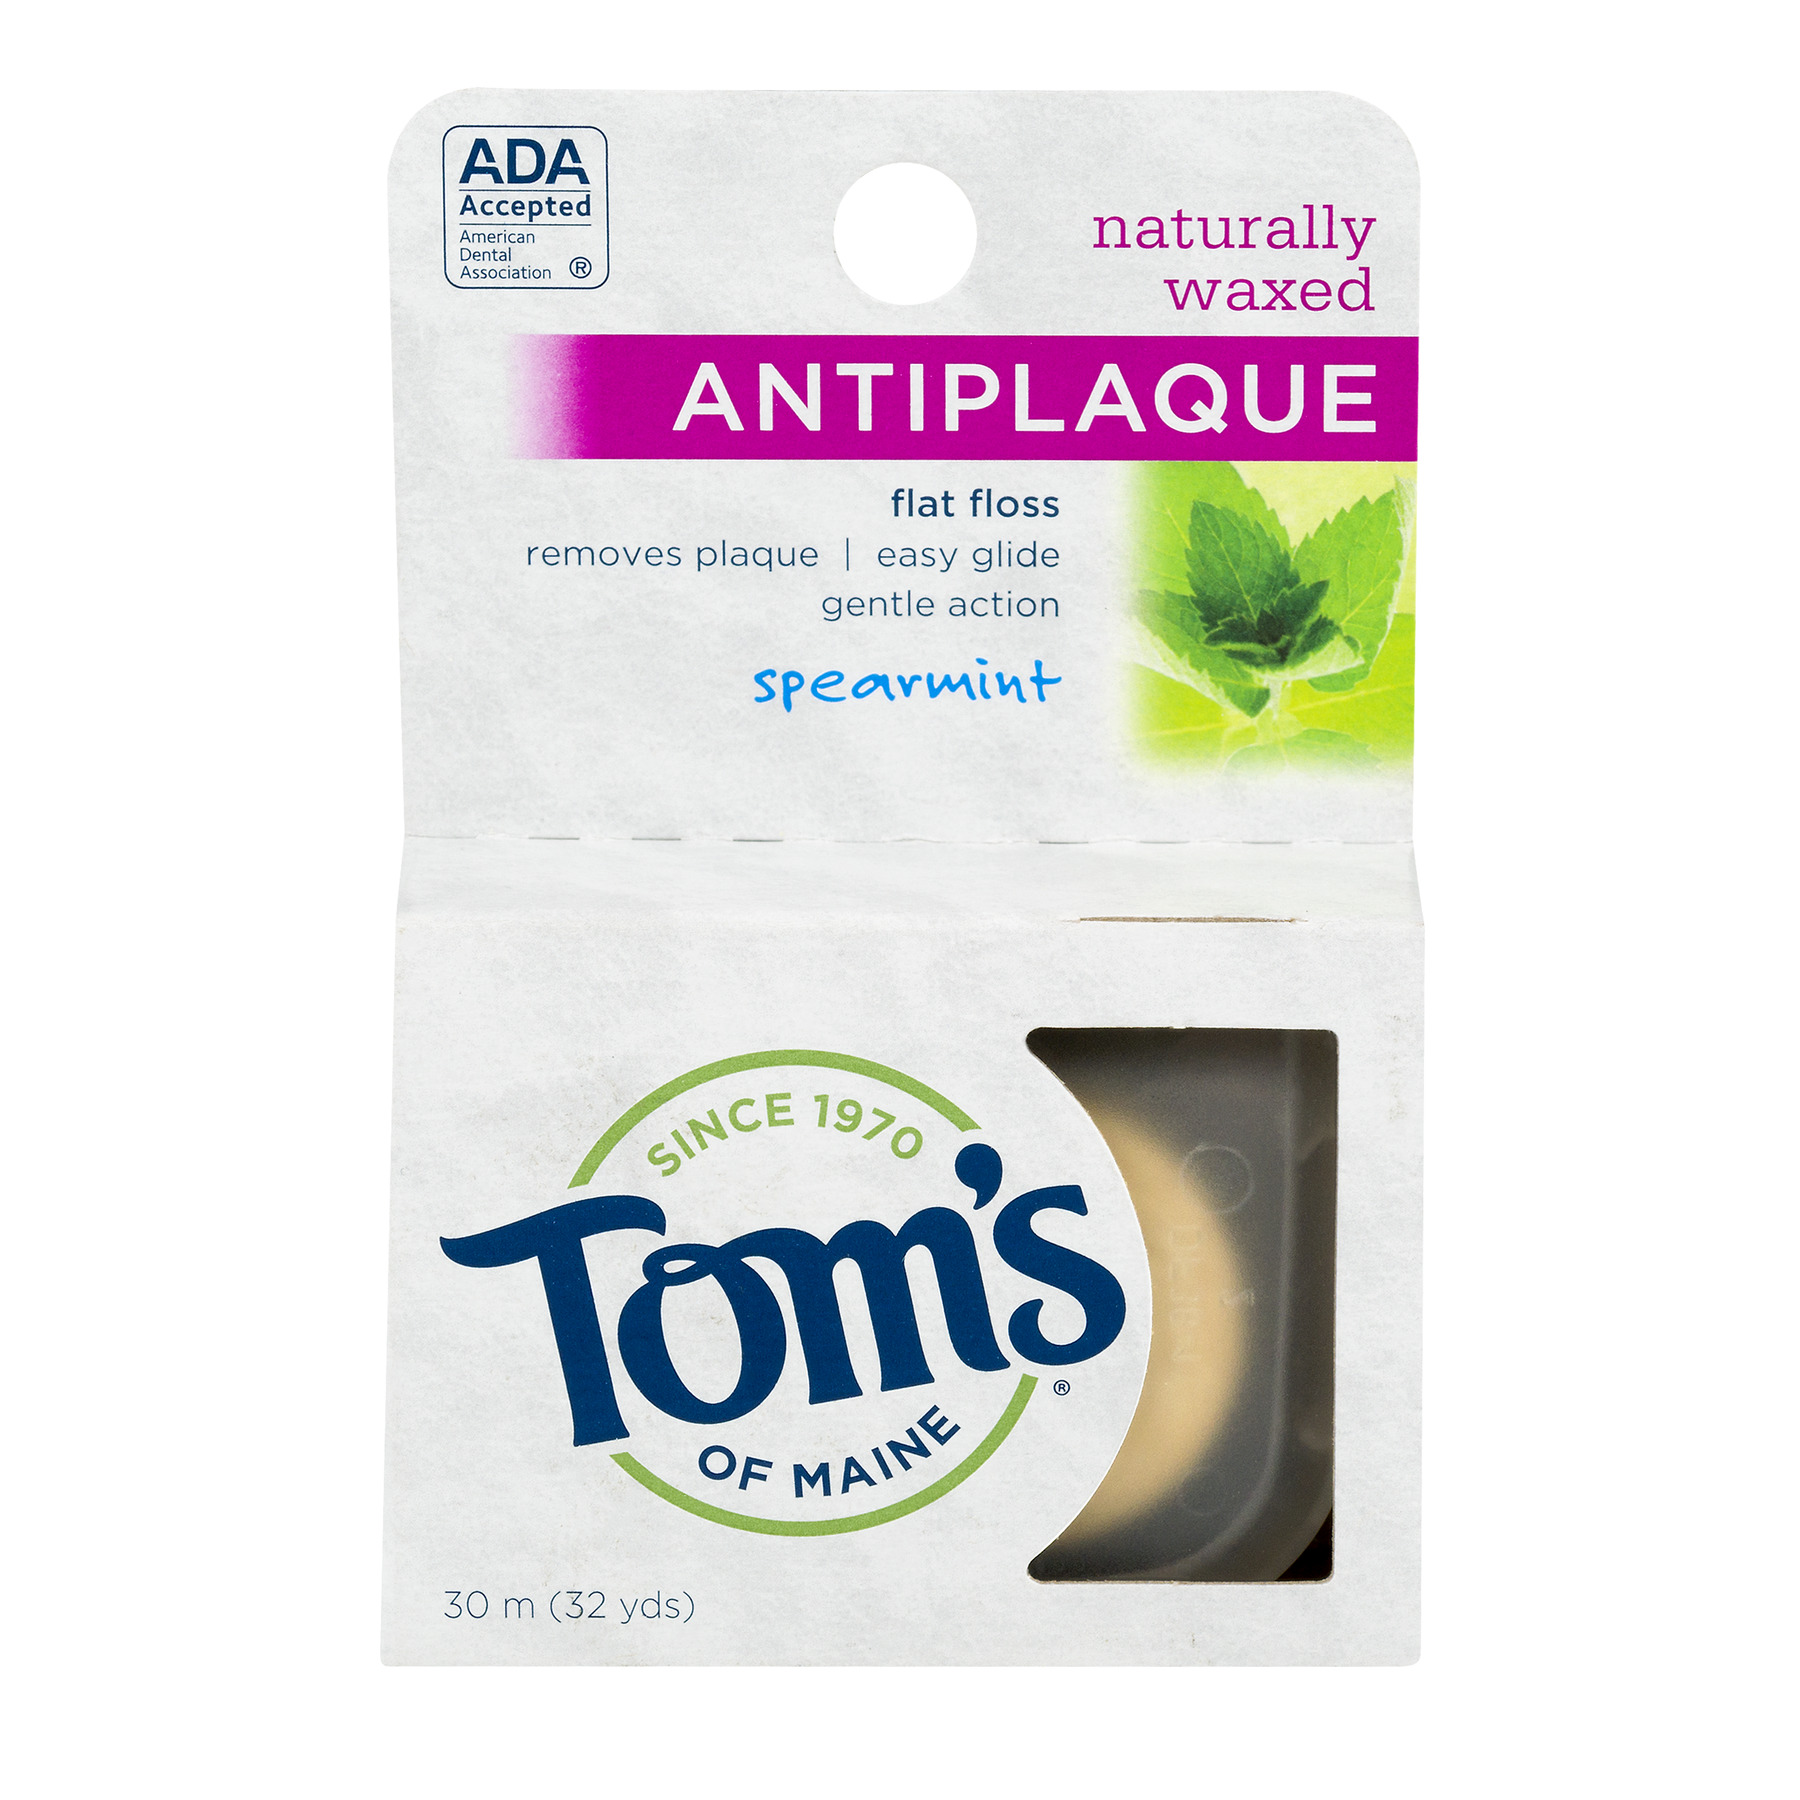 Tom's Of Maine Antiplaque Flat Floss Spearmint, 32.0 YARDS